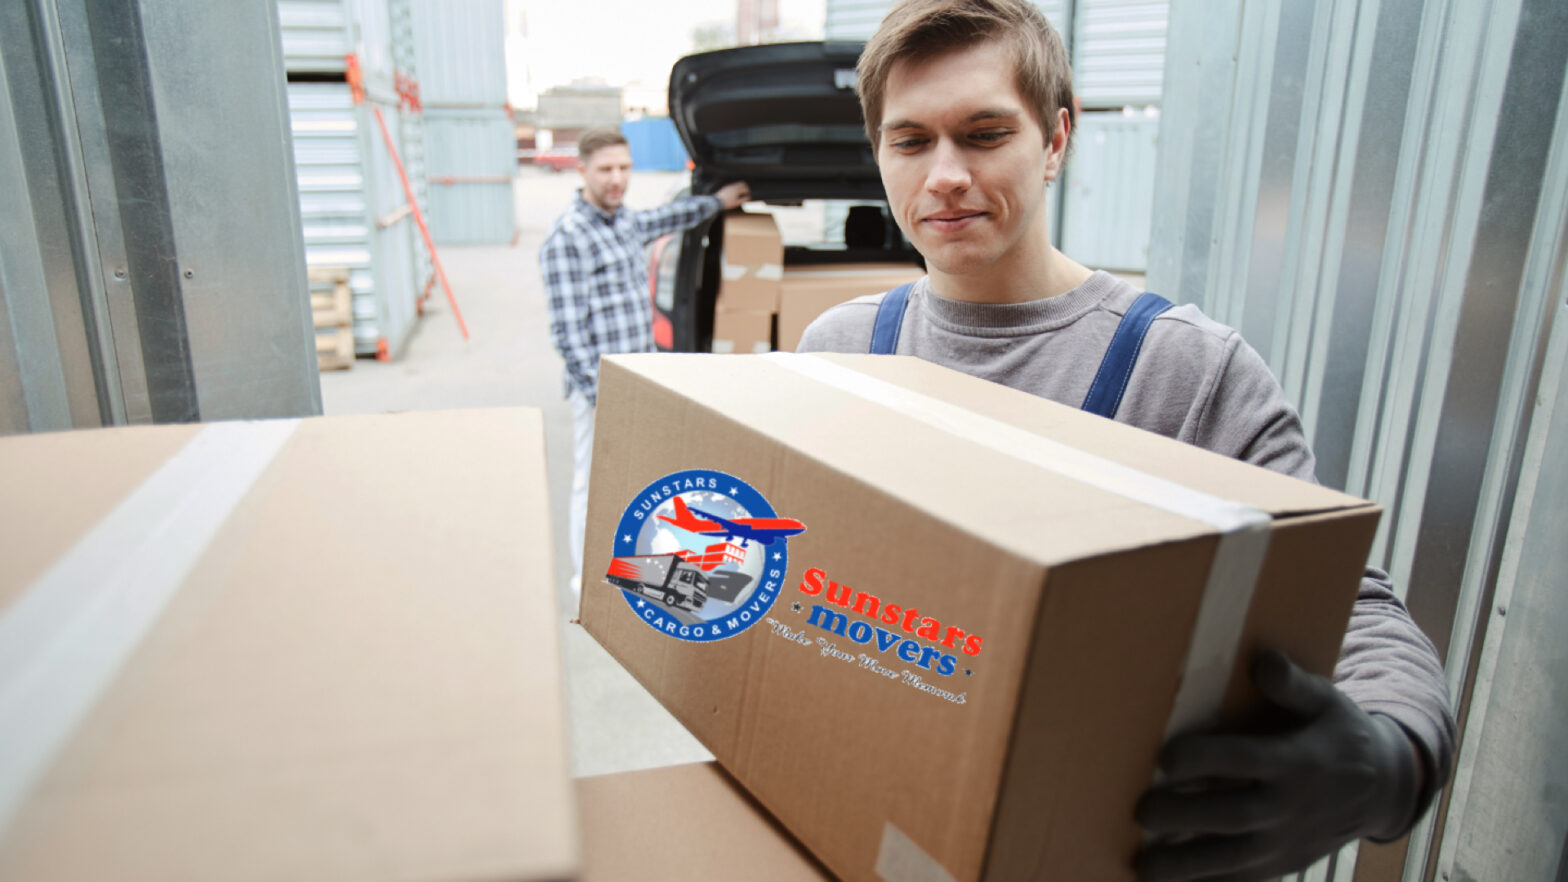 Best Office movers in Ajman- Sunstars movers